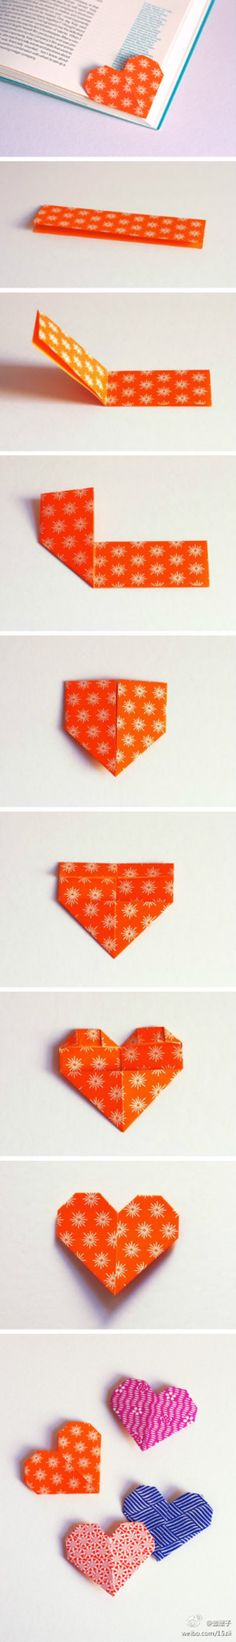 Make It: Paper Heart Bookmark (No link, self explanatory) #papercrafts #origami